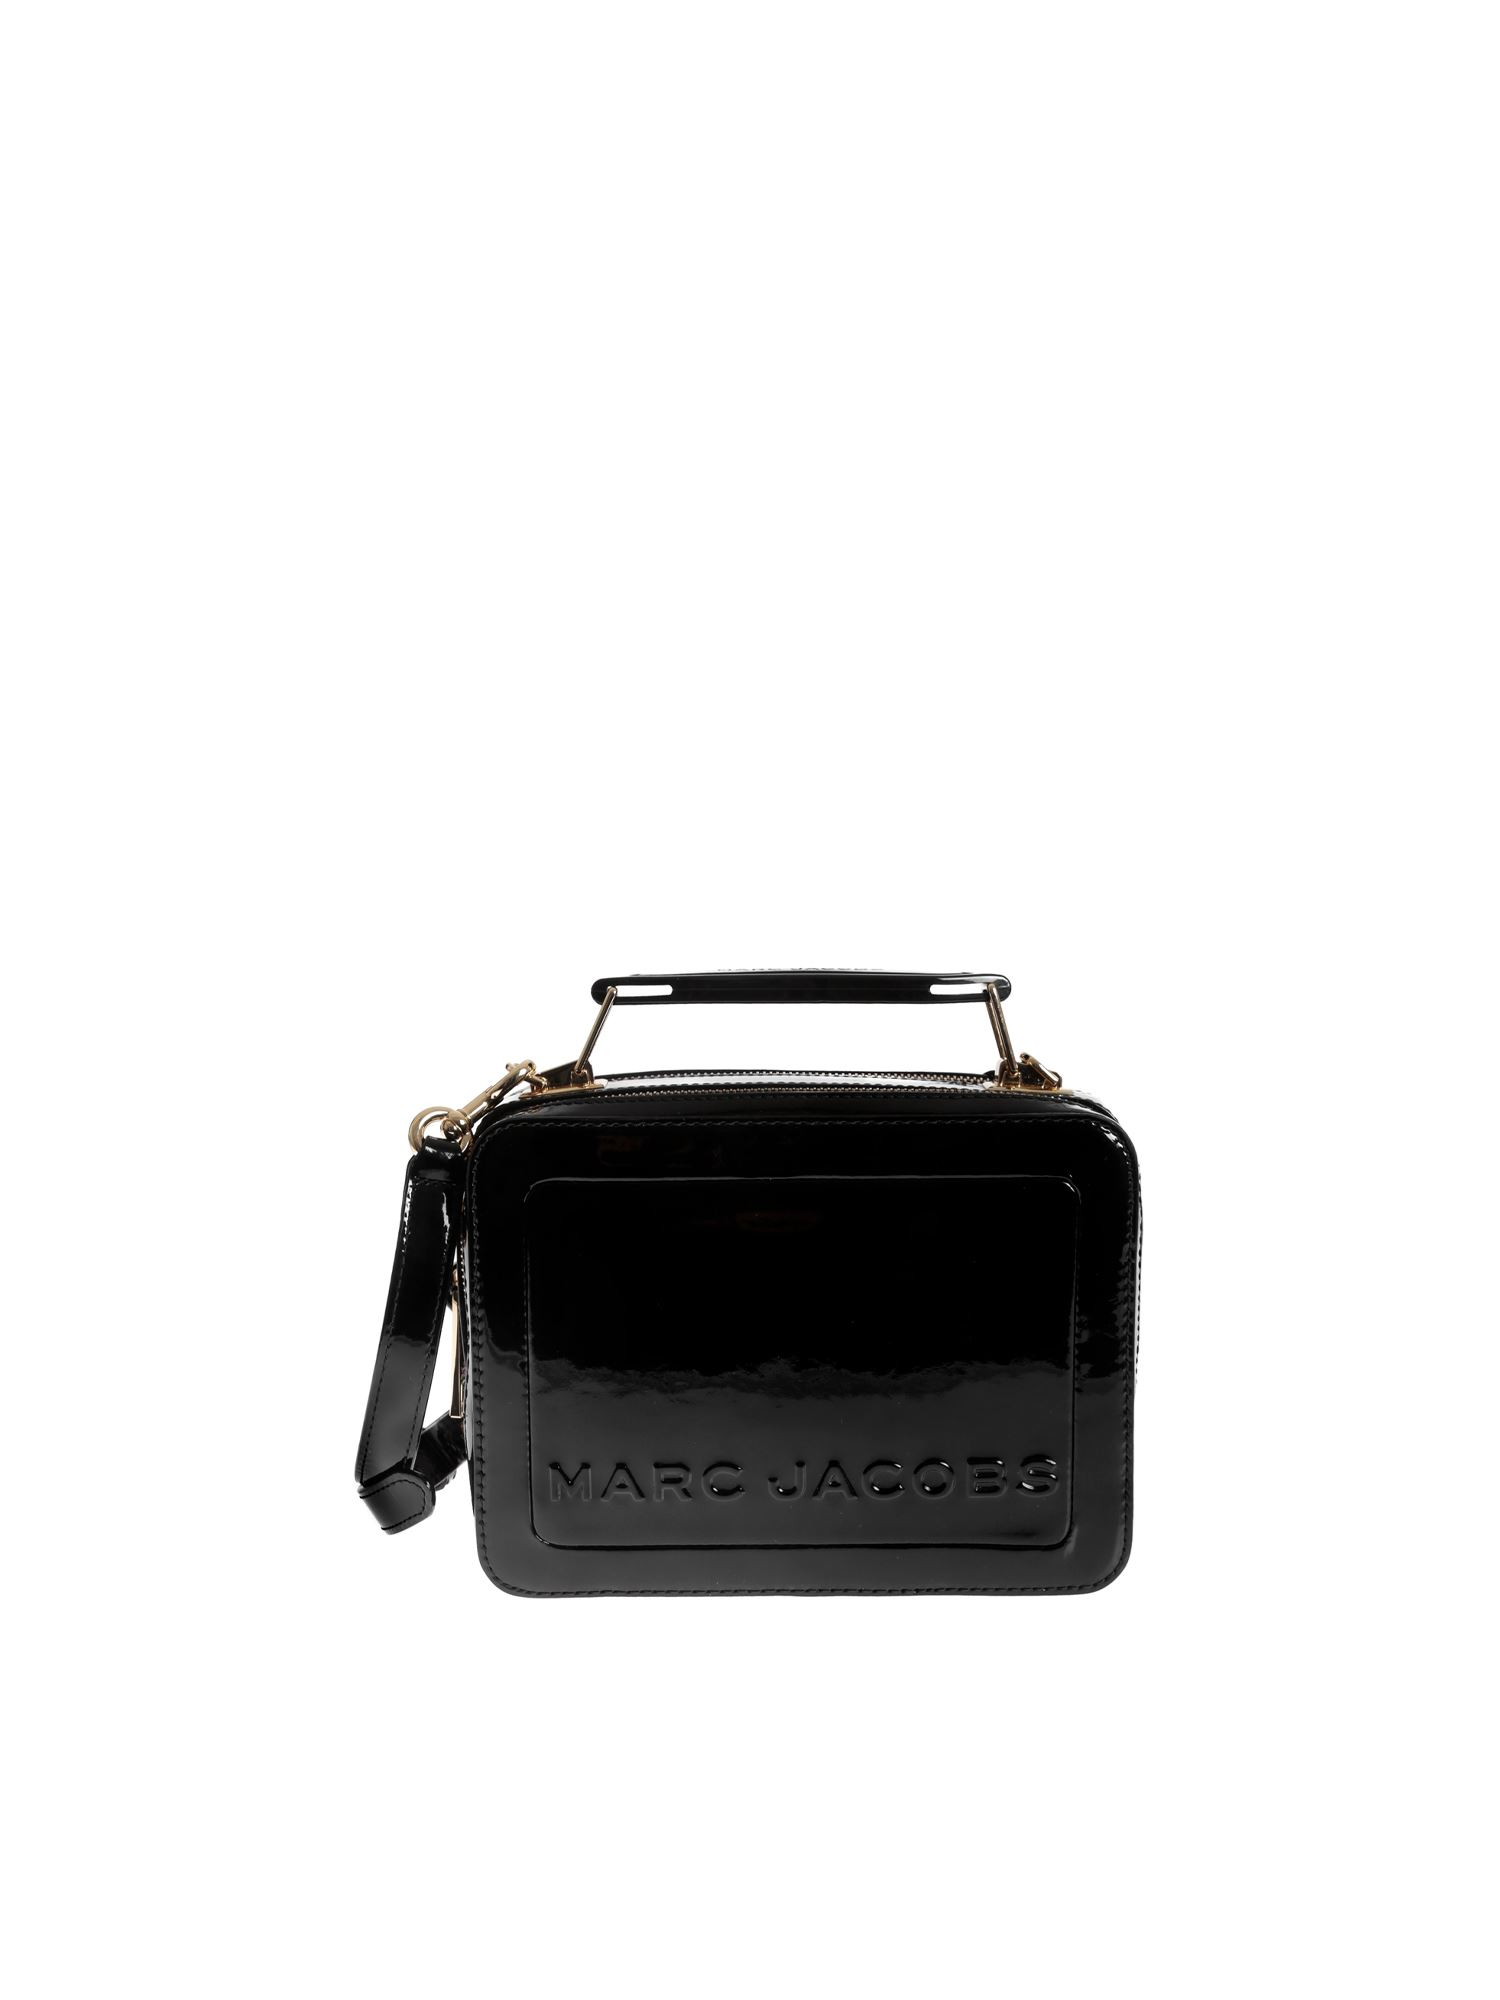 Marc Jacobs THE PATENT BOX BAG IN BLACK